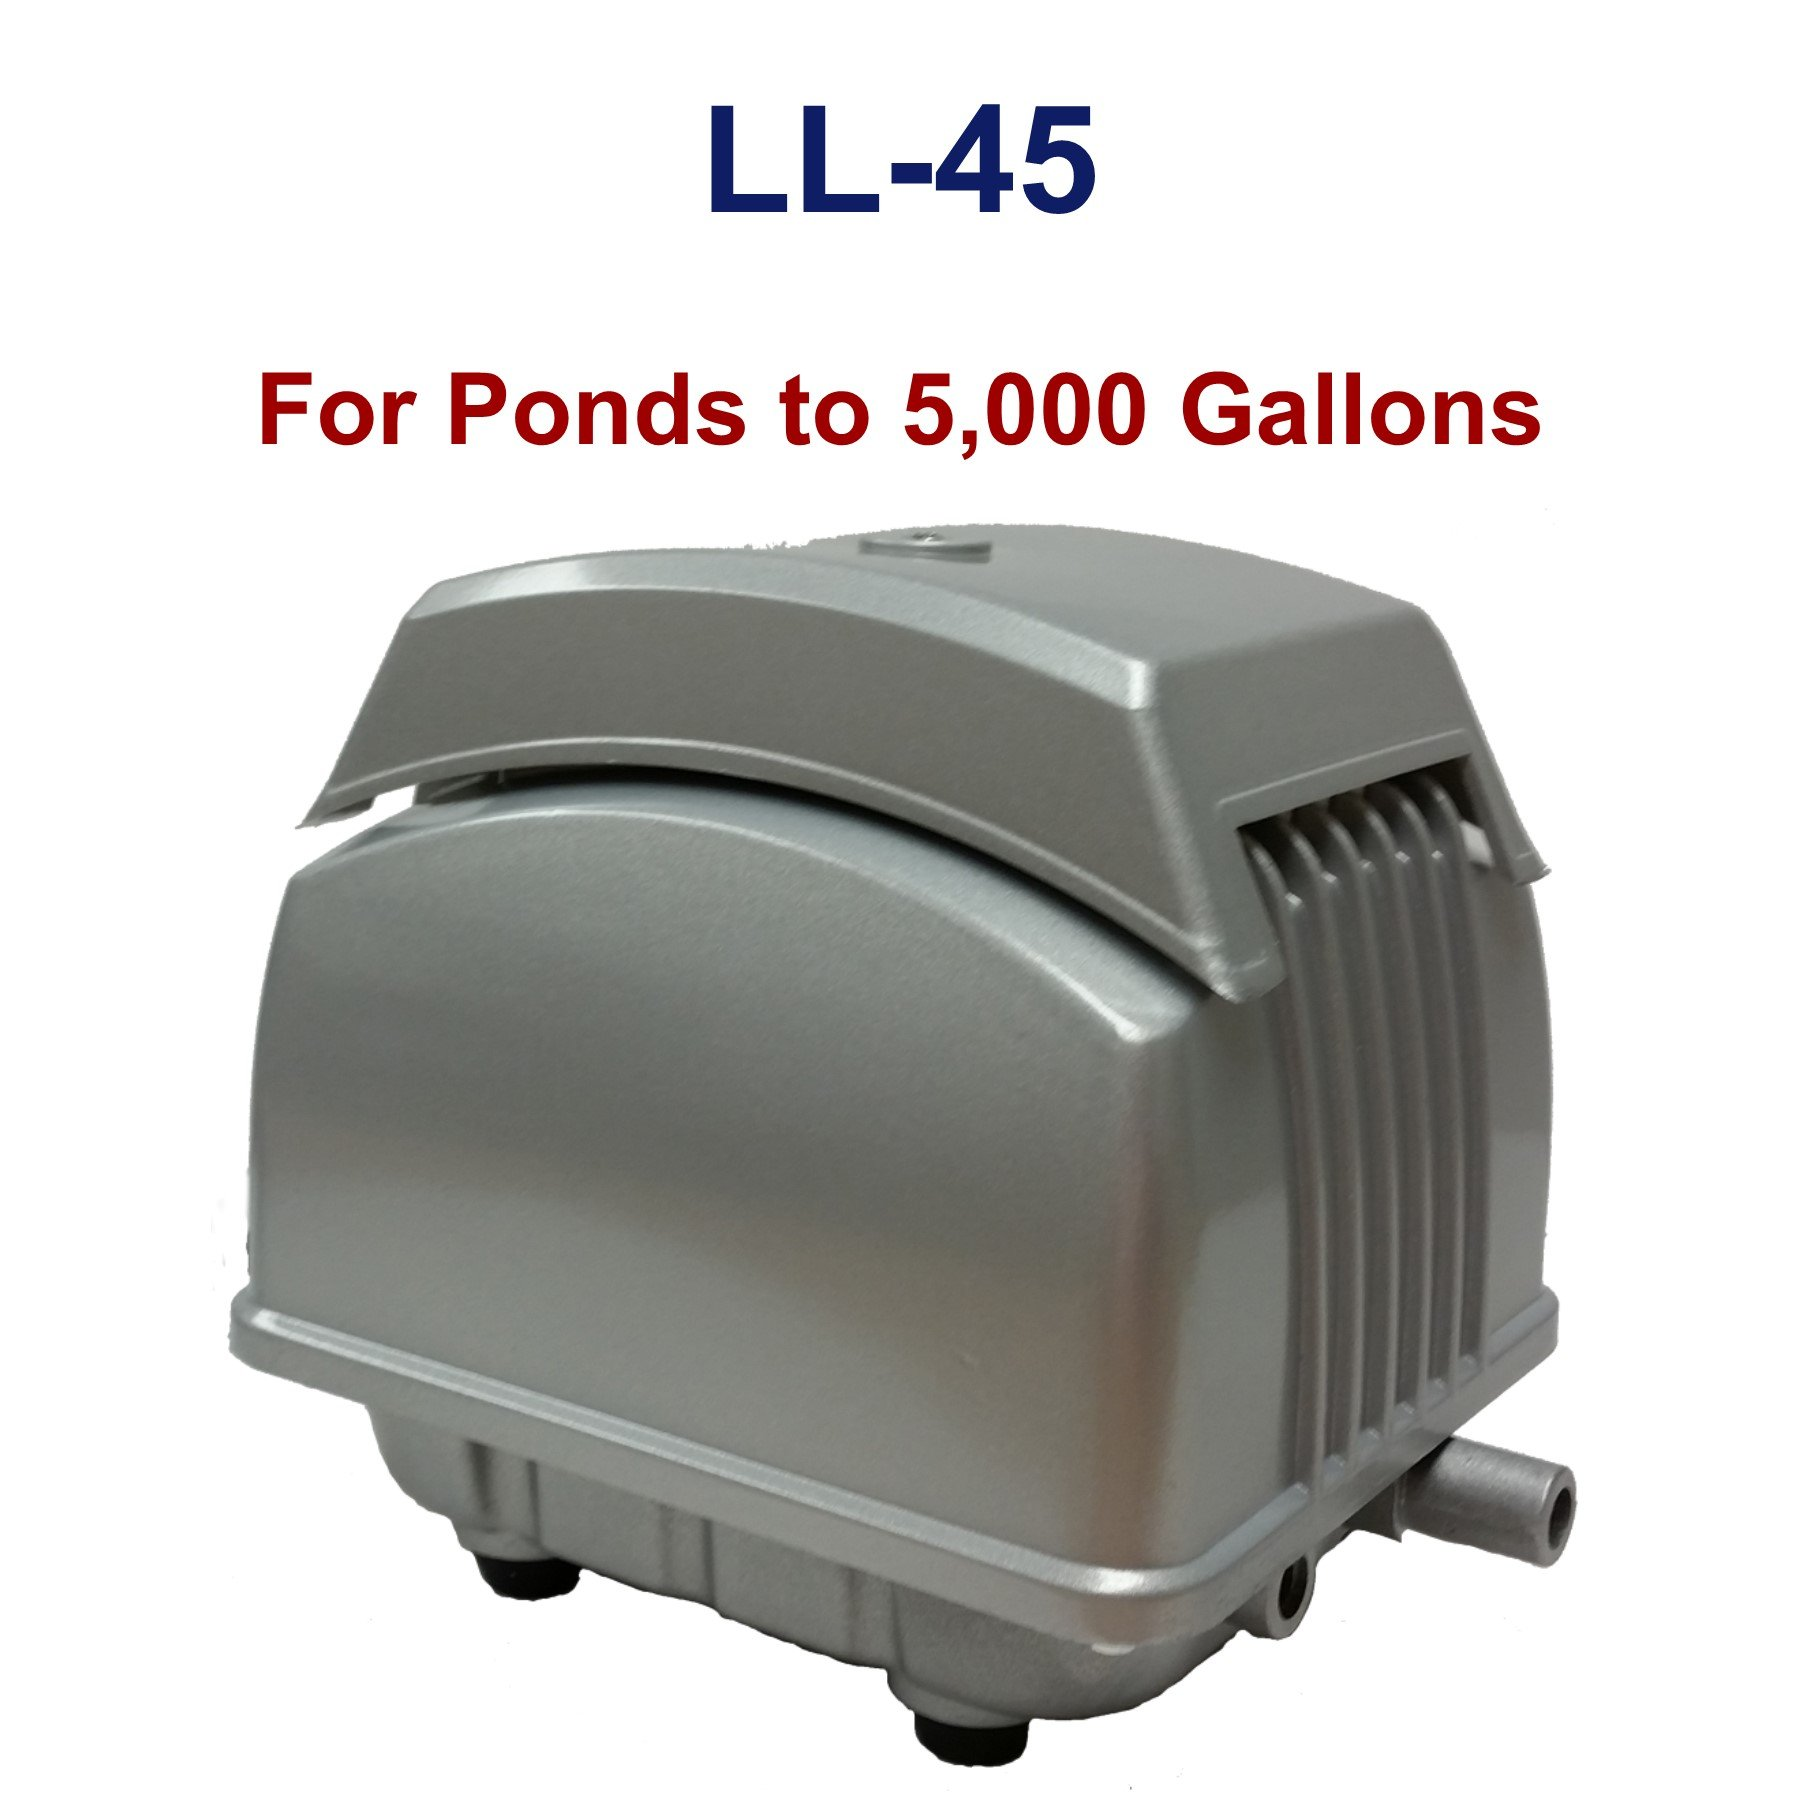 Patriot Air Pump LL-45, 1.8 Cubic Feet Per Minute, Pond Depth To 15 Feet by Patriot